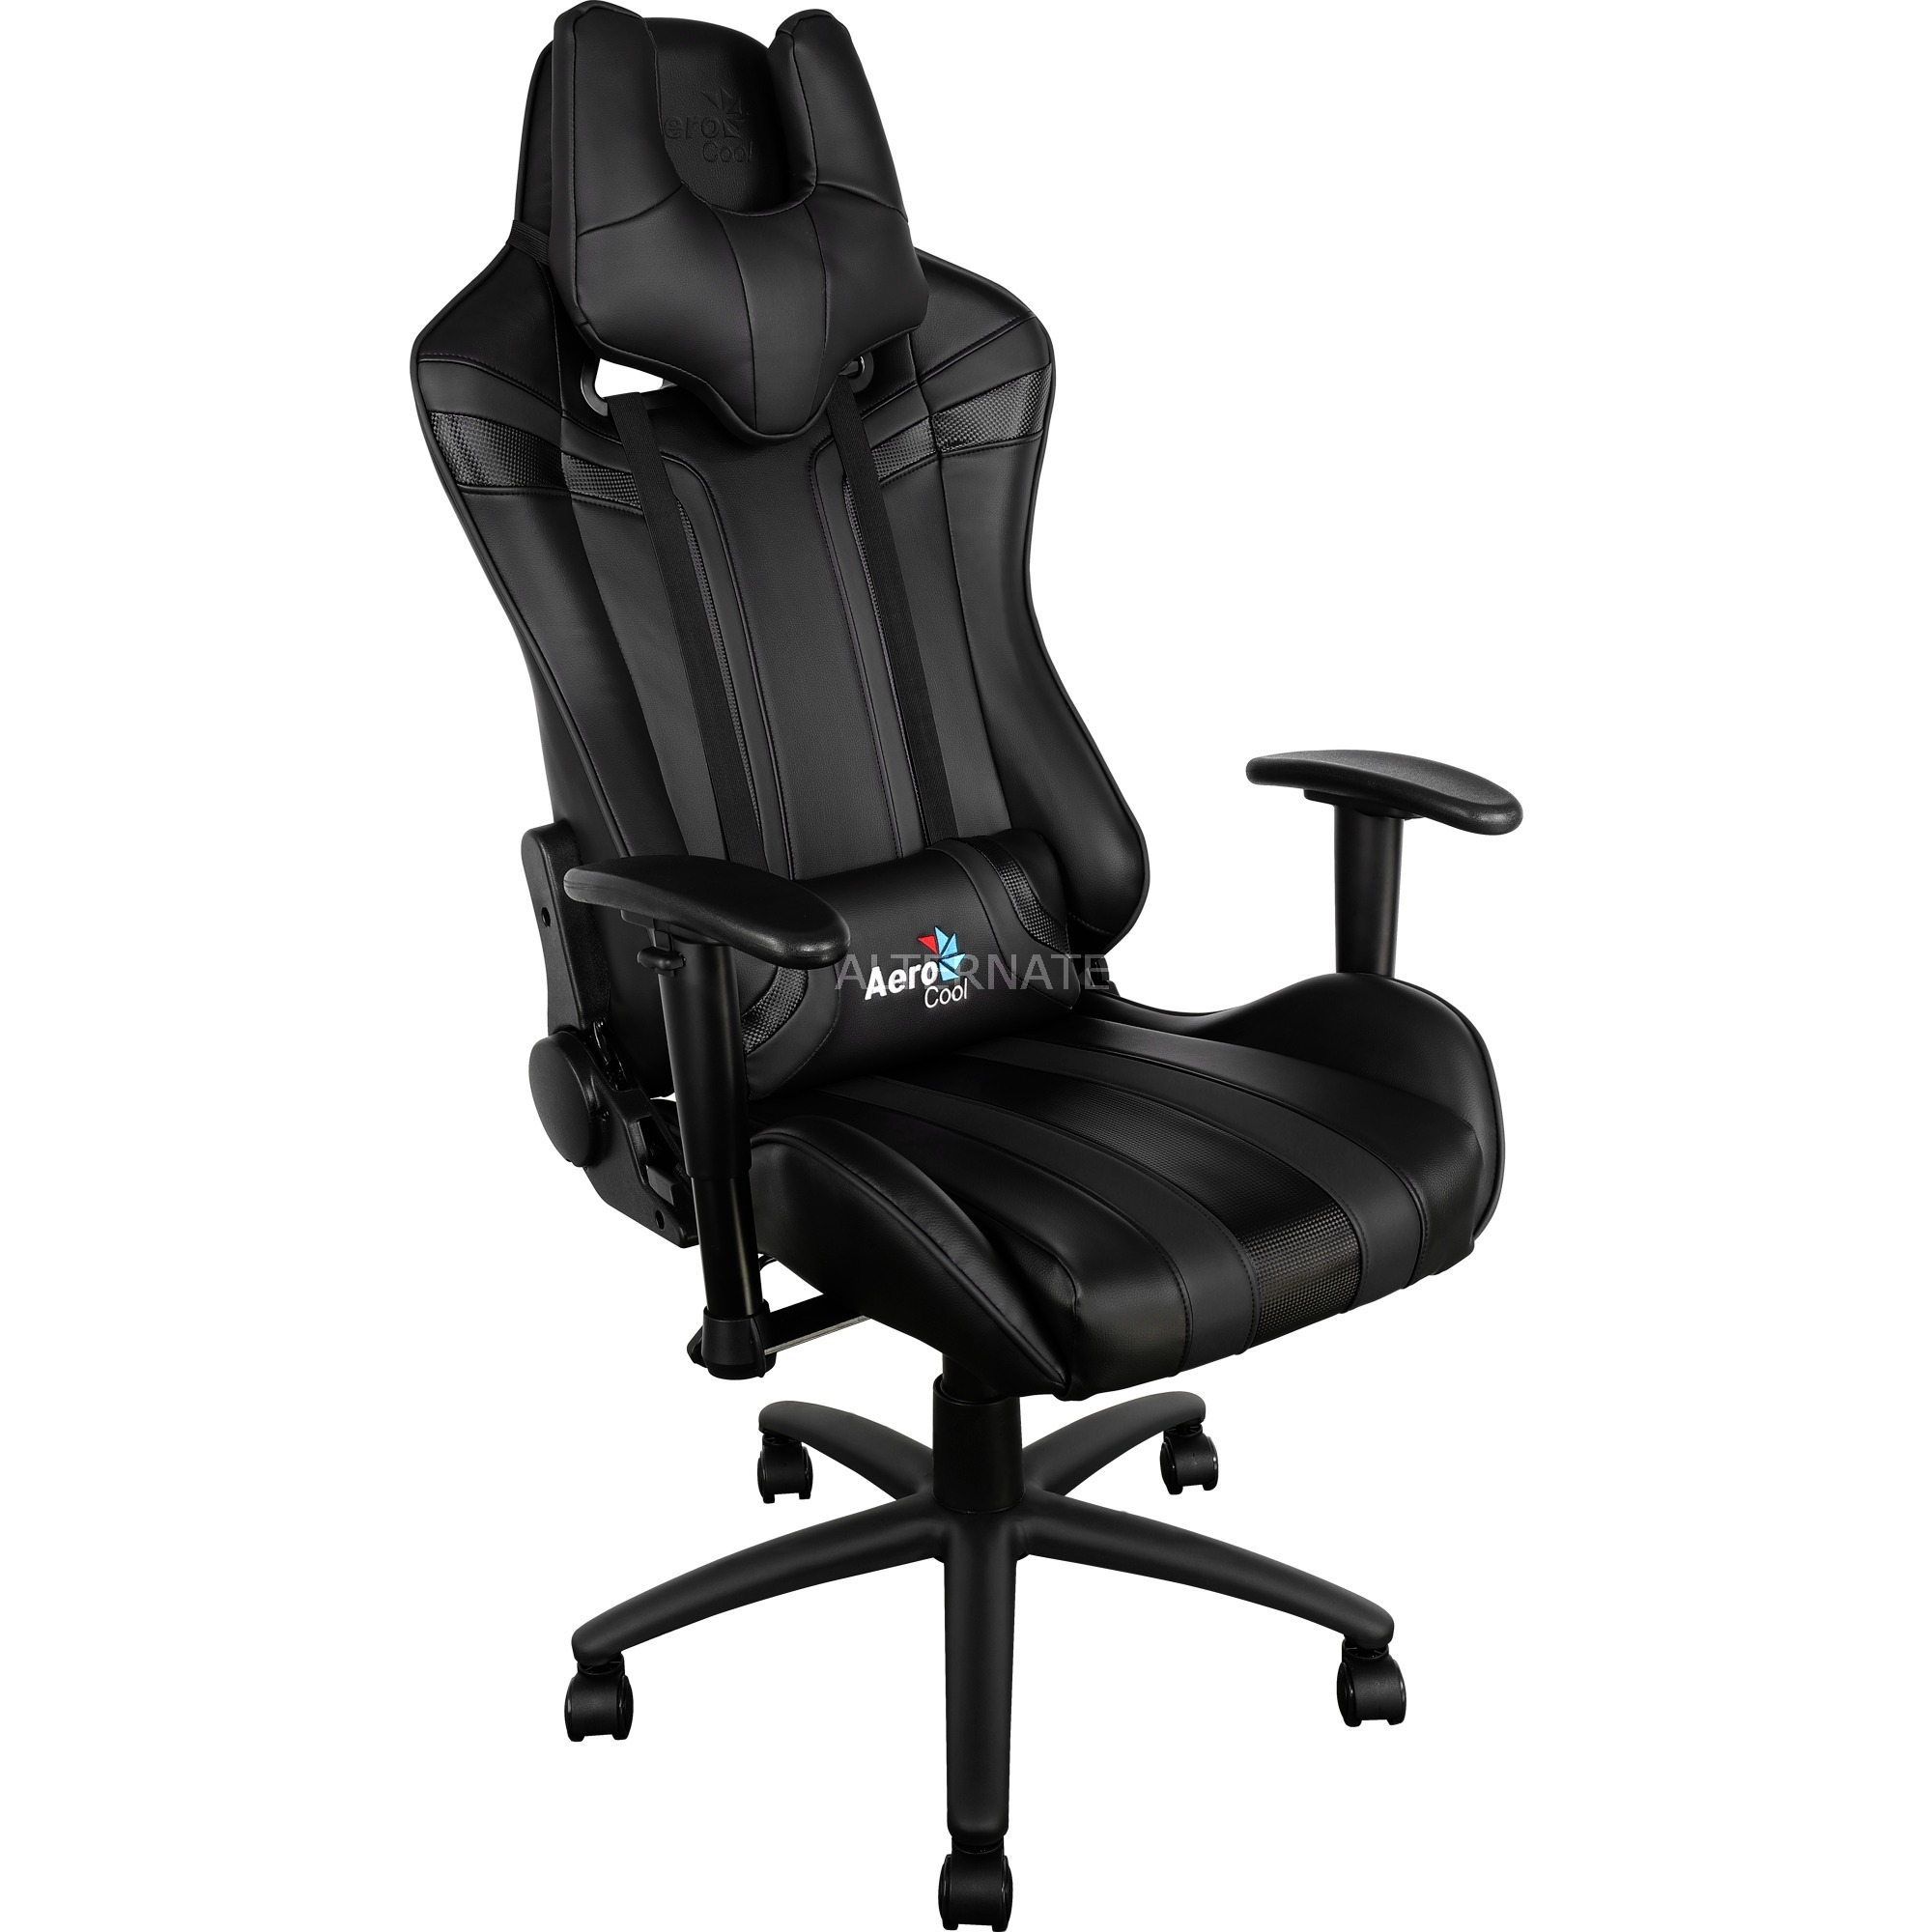 Gamer Sessel Xbox One Ac120 Air Gaming Chair Spielsitz Schwarz